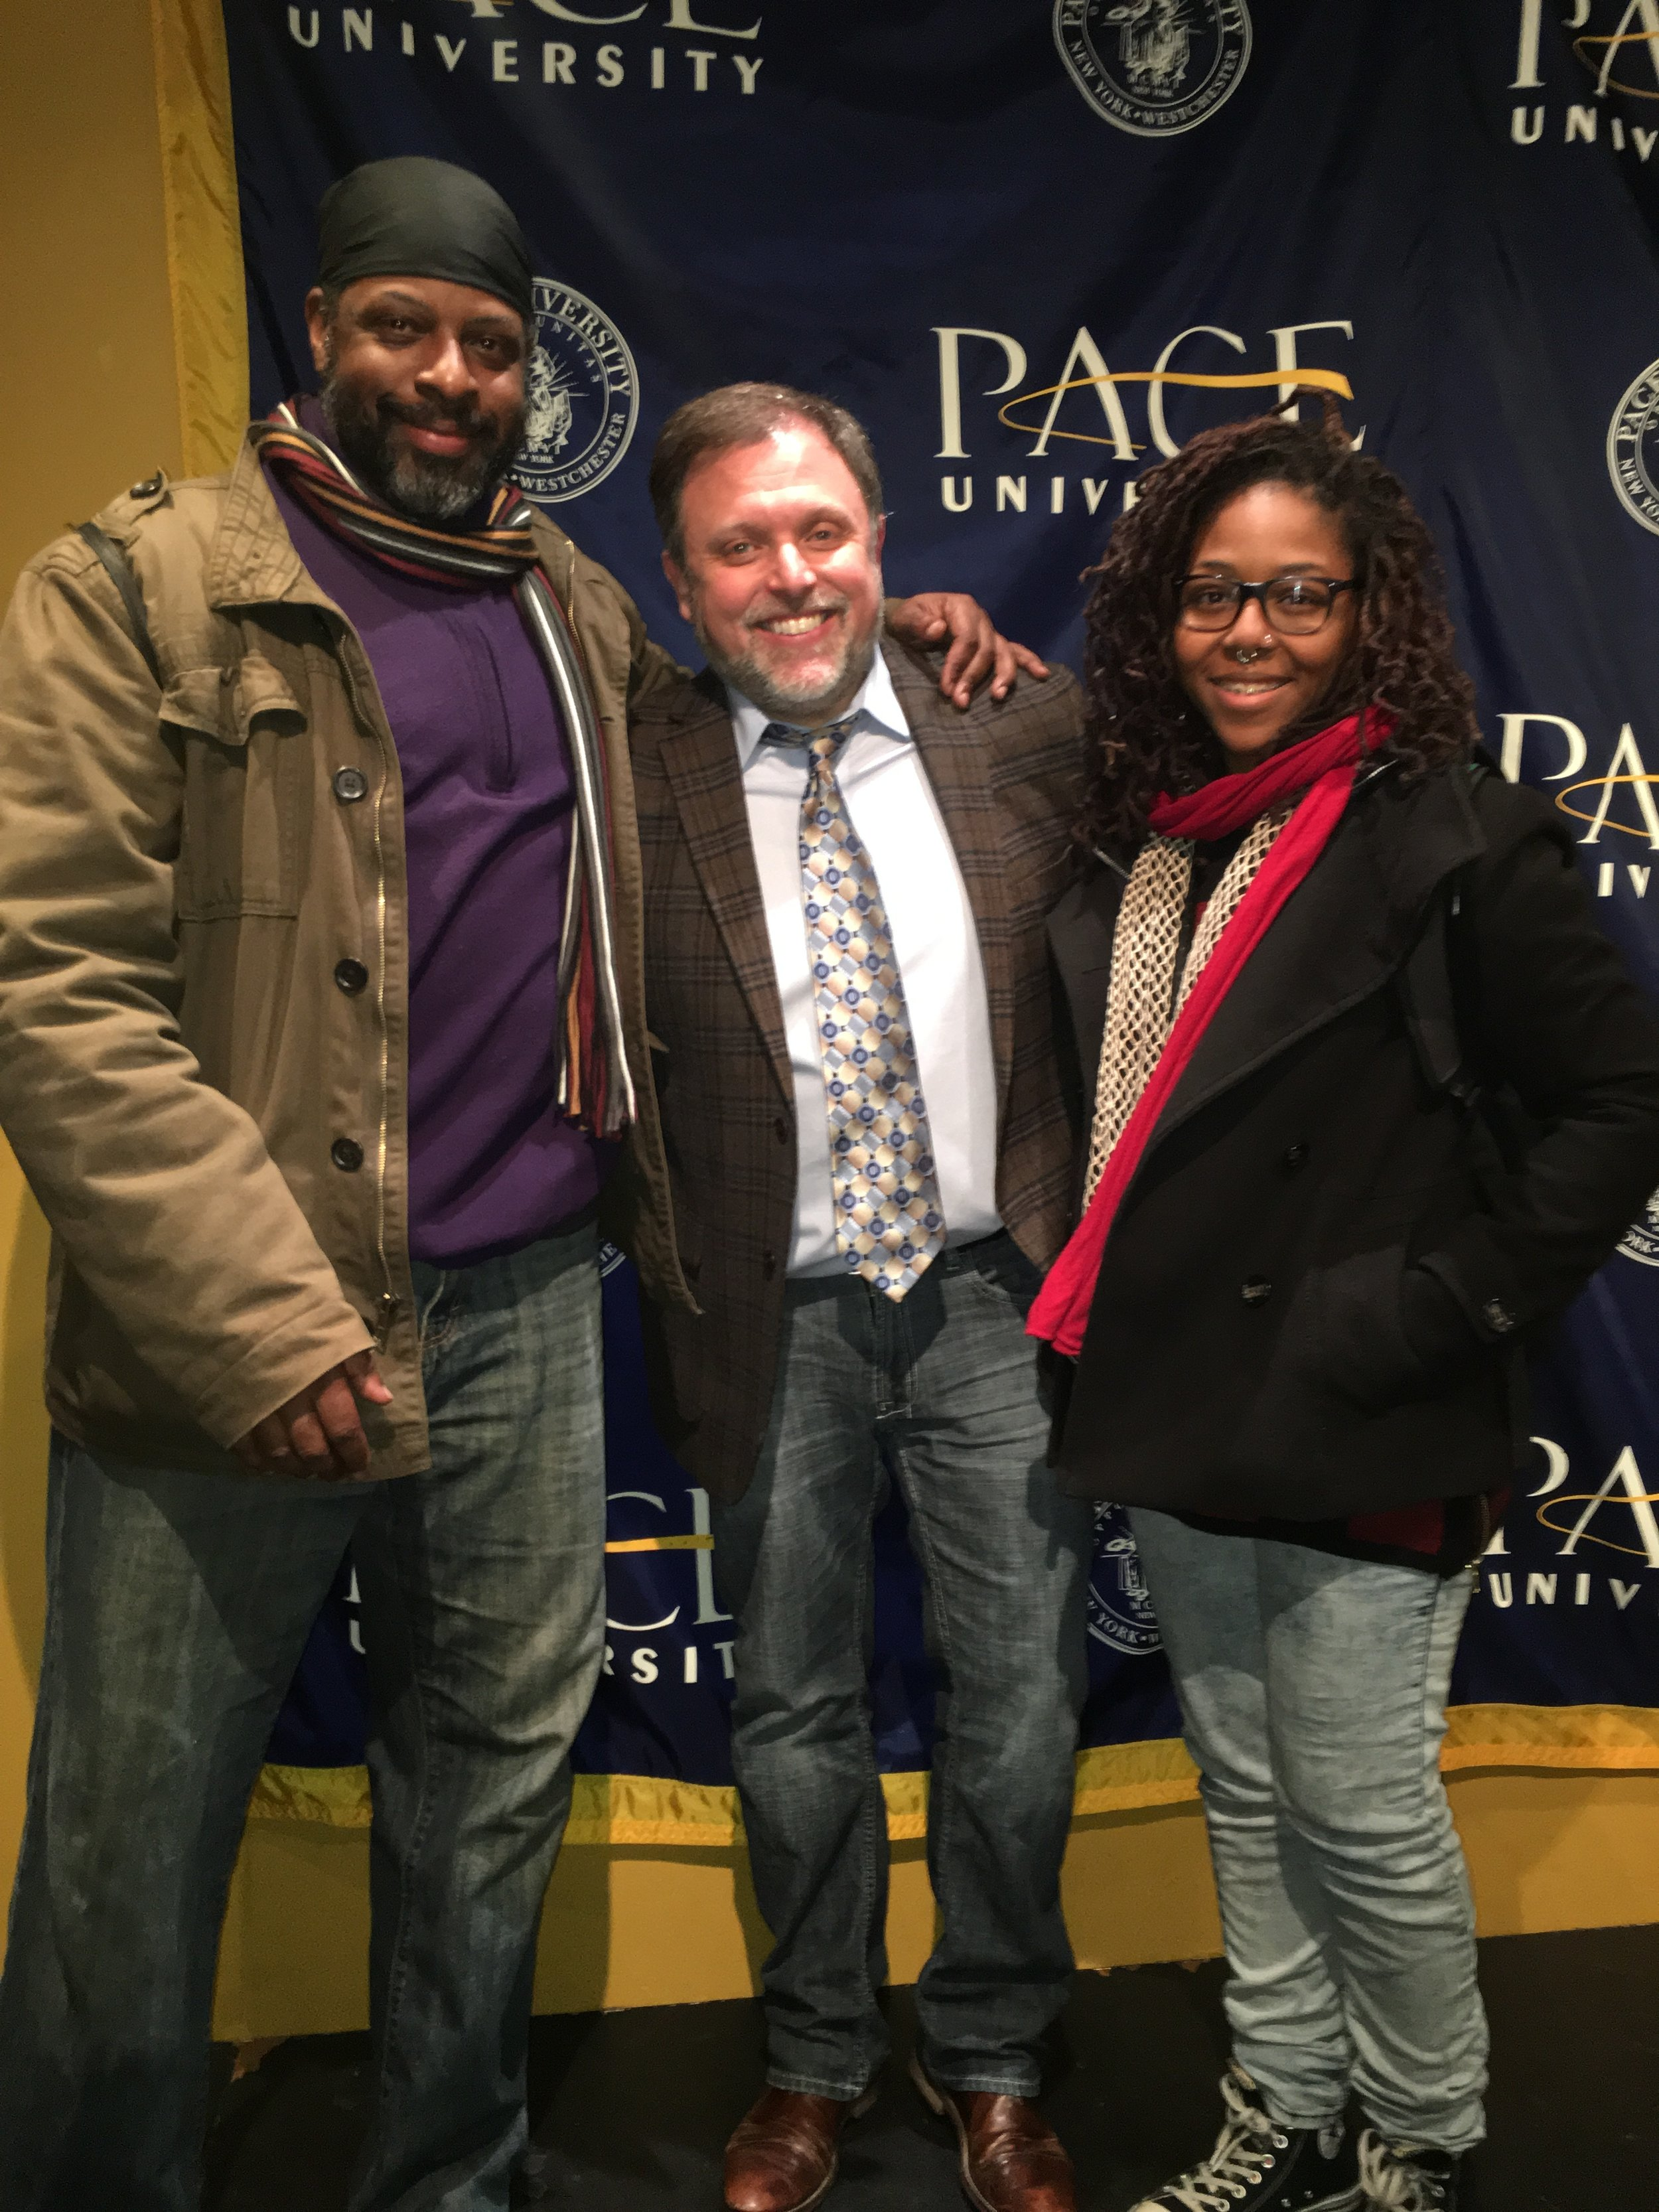 Pace University, 2016. Darryl Aiken-Afam & recording artist Noni Rene w/ Anti-Racism Activist and Author Tim Wise, 2016